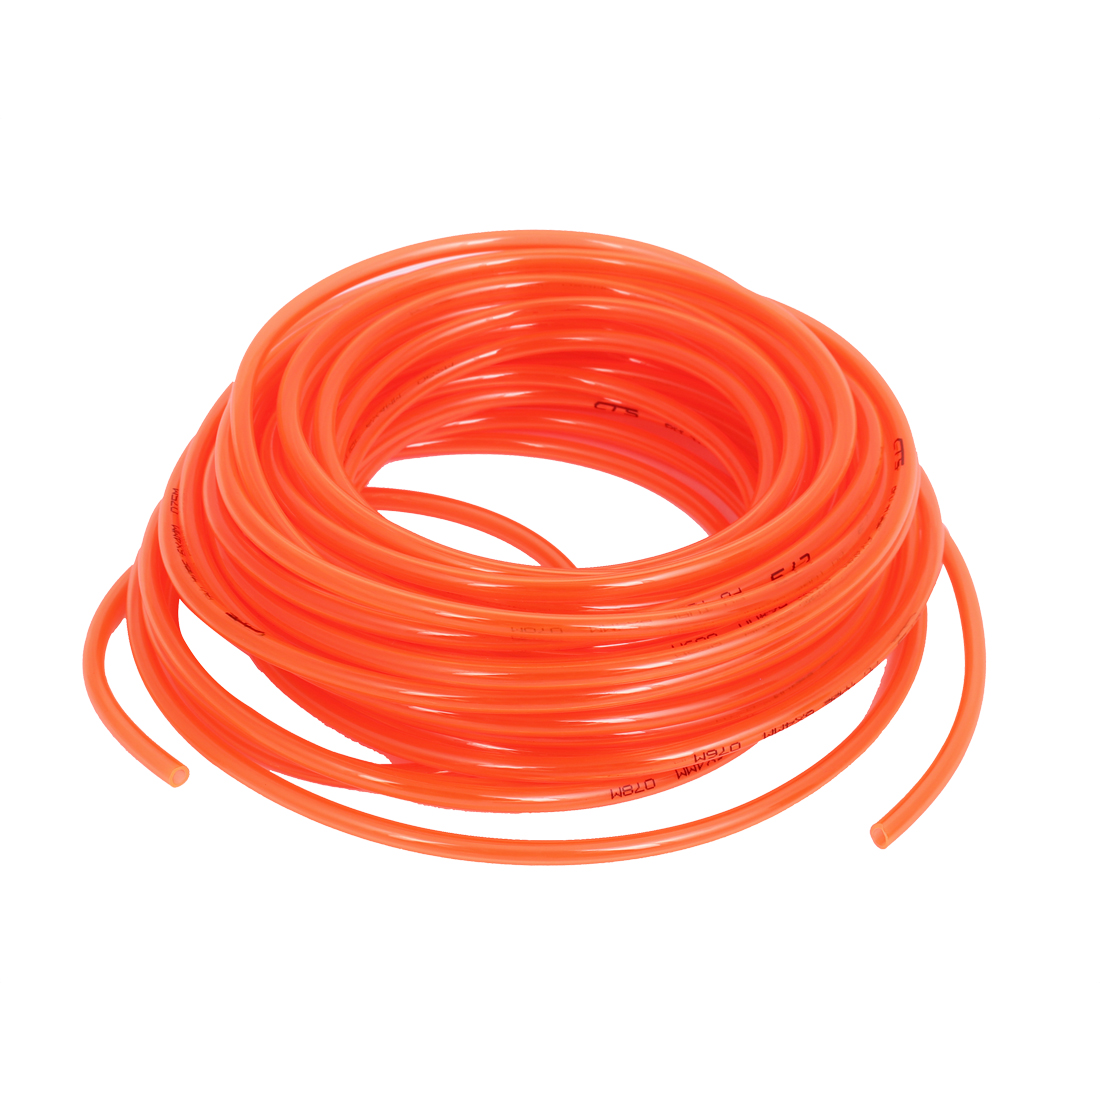 18M 59Ft Length 6mm x 4mm Dia Pneumatic Polyurethane PU Air Compressor Pneumatic Tube Tubing Pipe Hose Orange